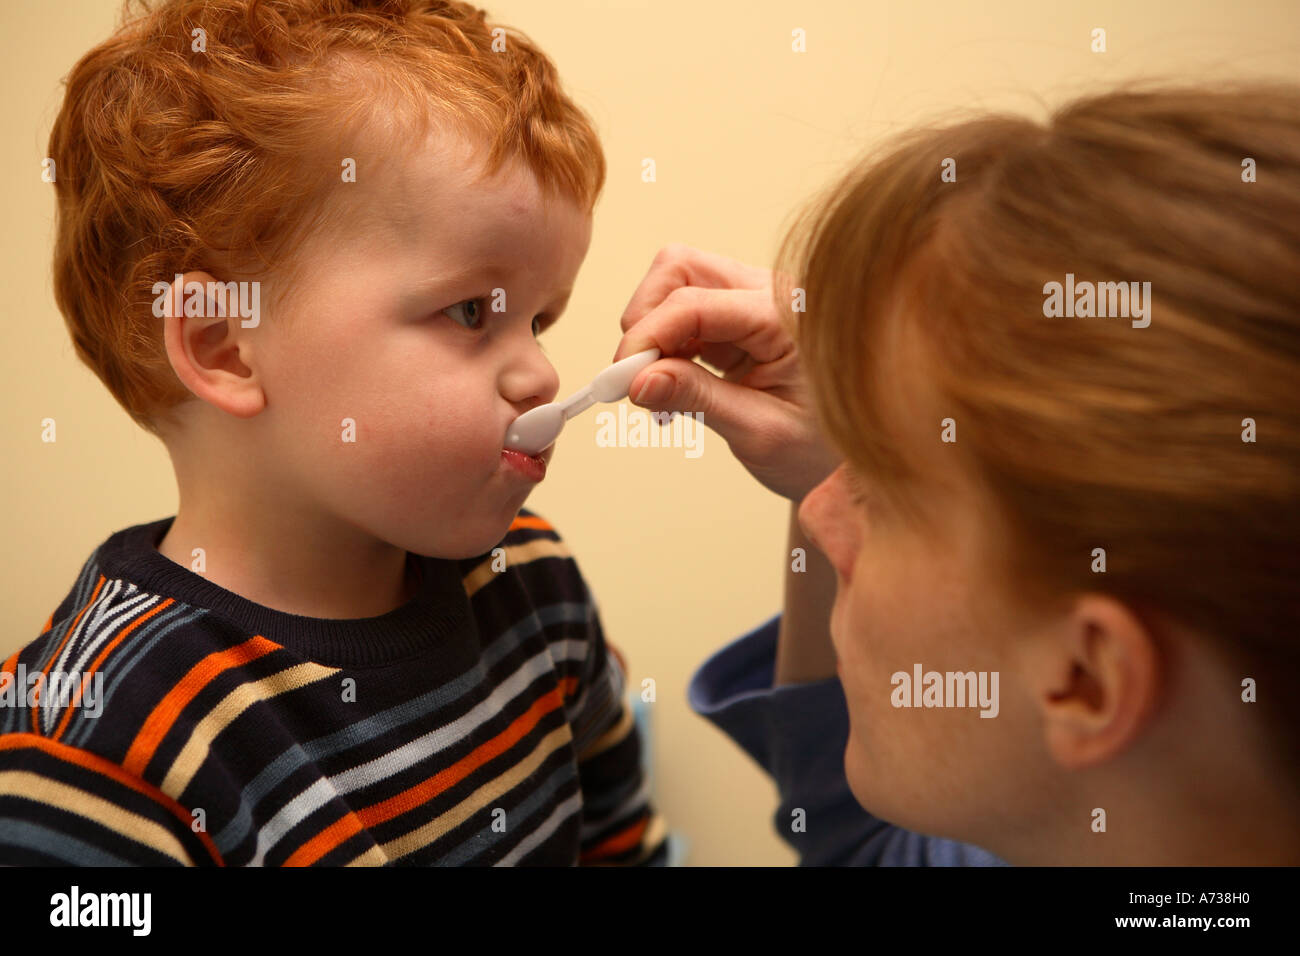 Boy taking medicine from a spoon held by his mother - Stock Image